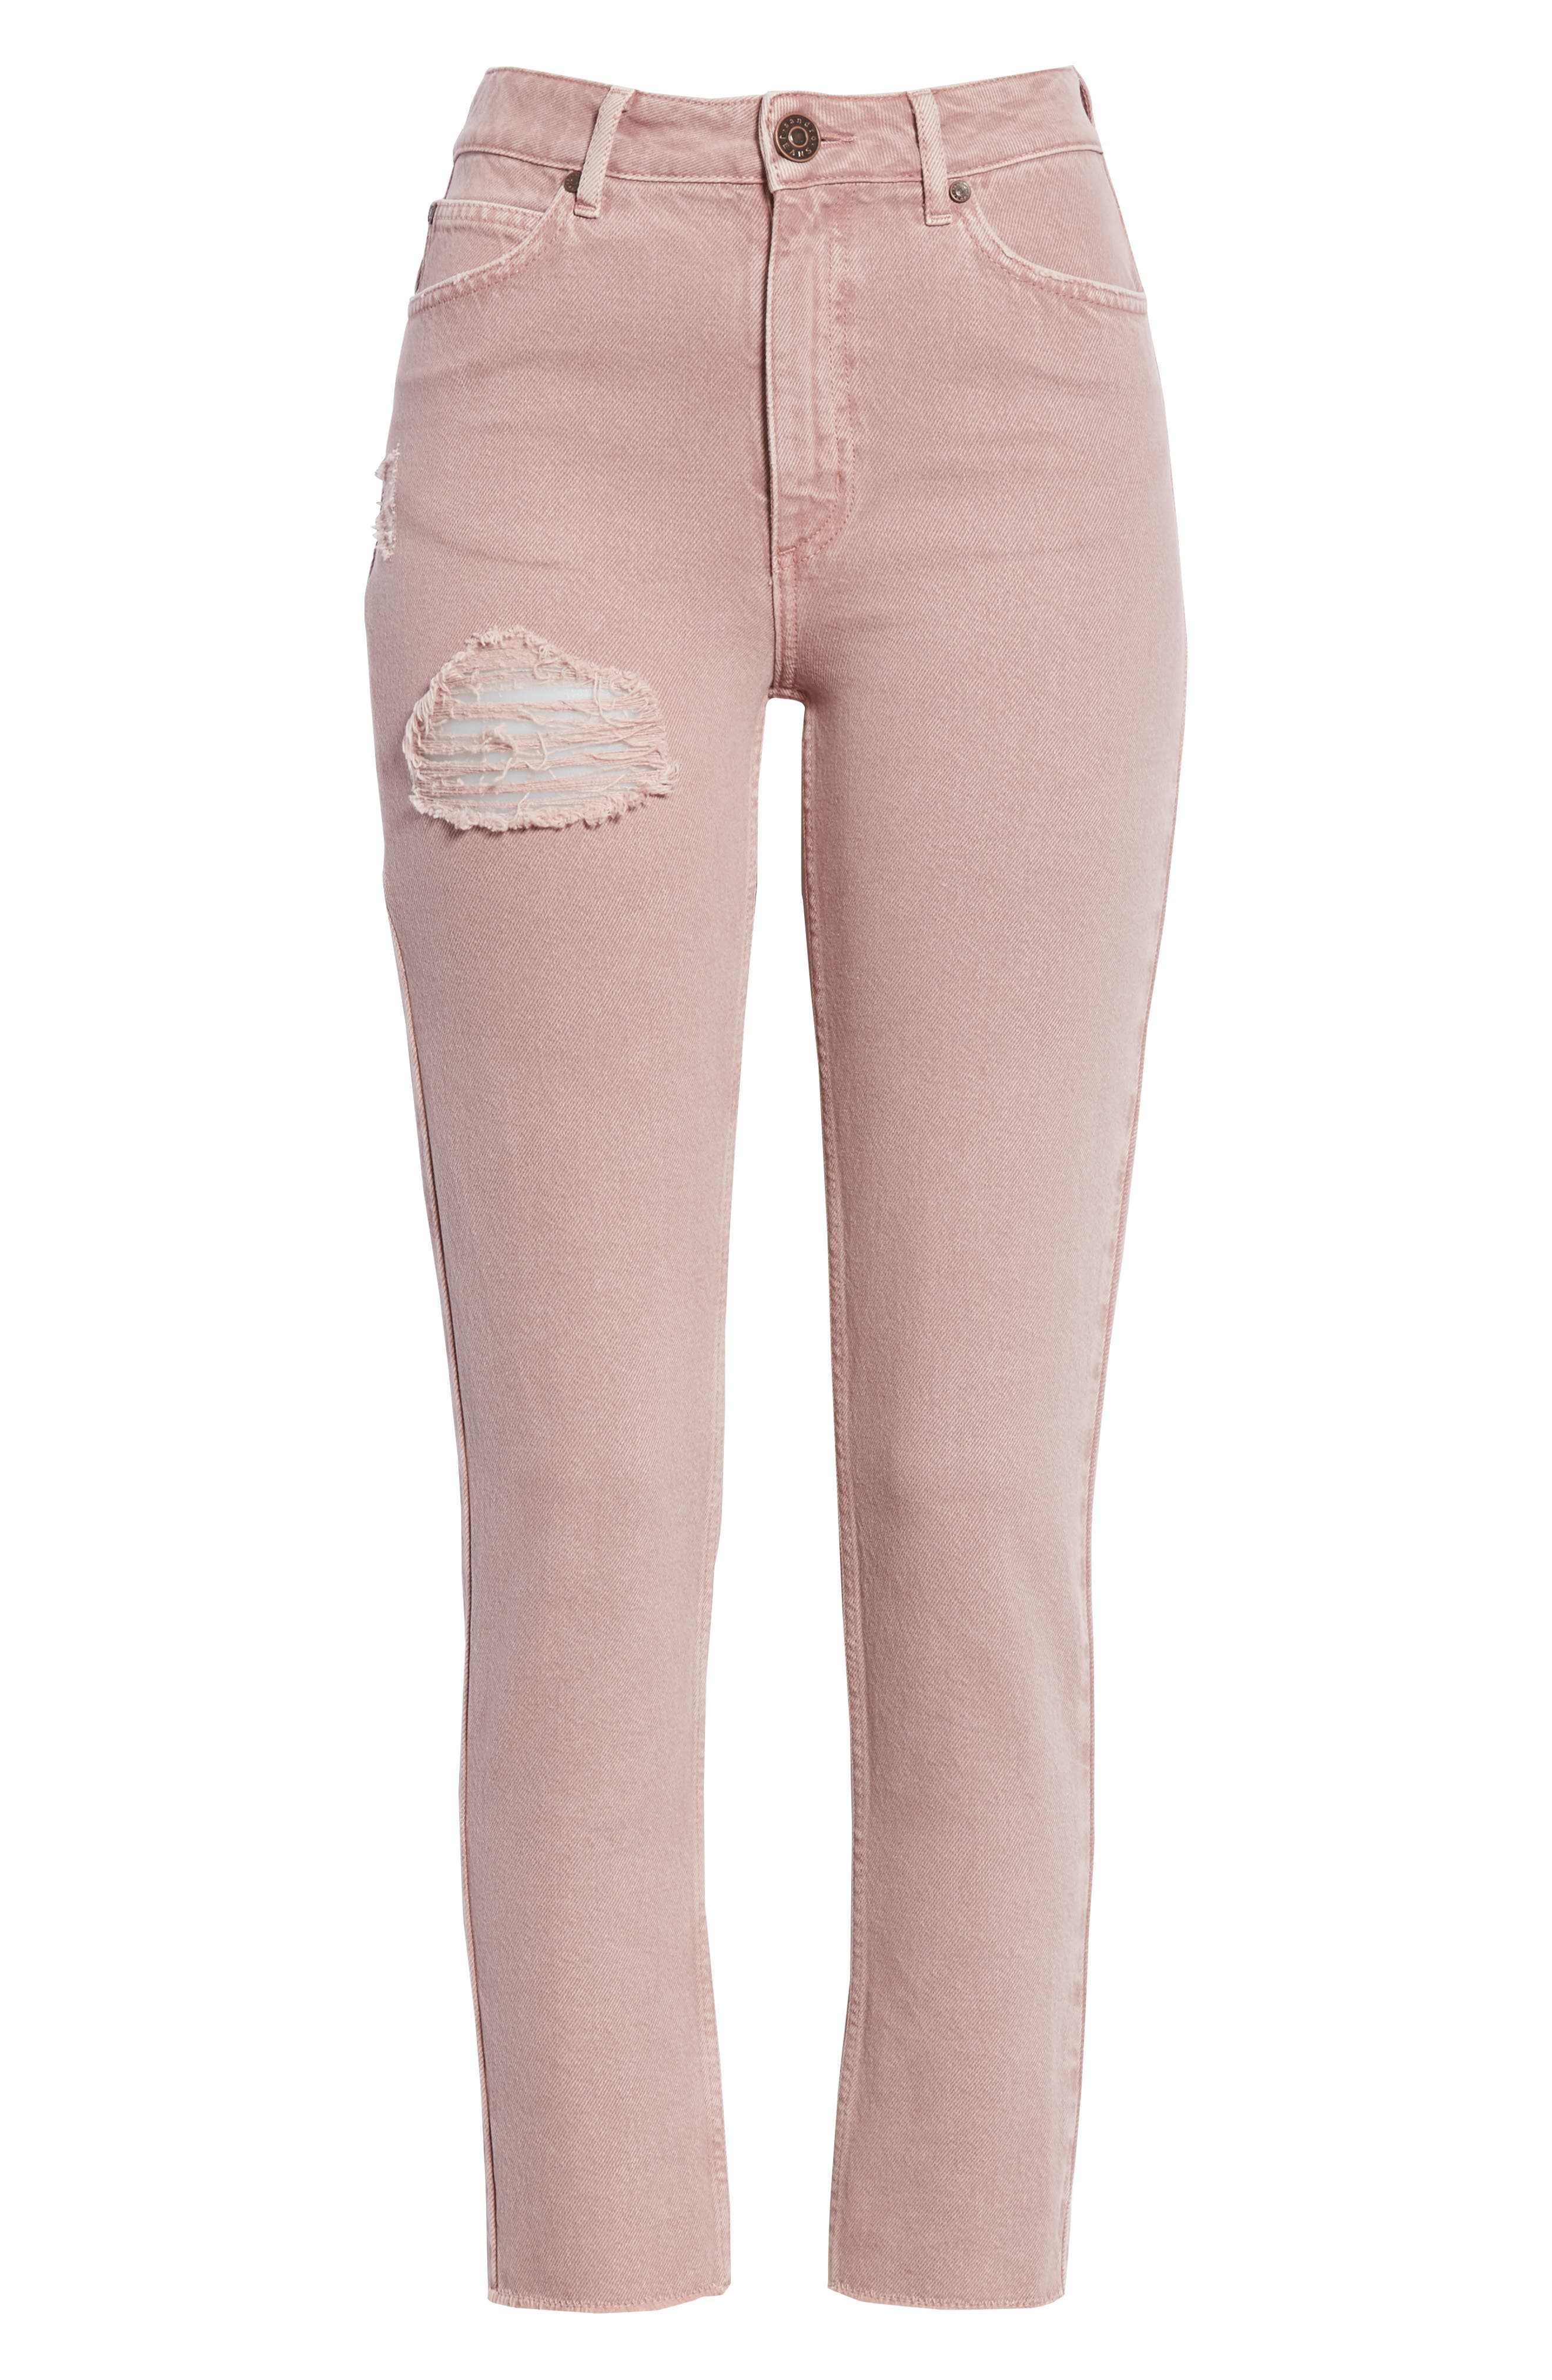 Ripped Raw Edge Jeans,                             Alternate thumbnail 6, color,                             650